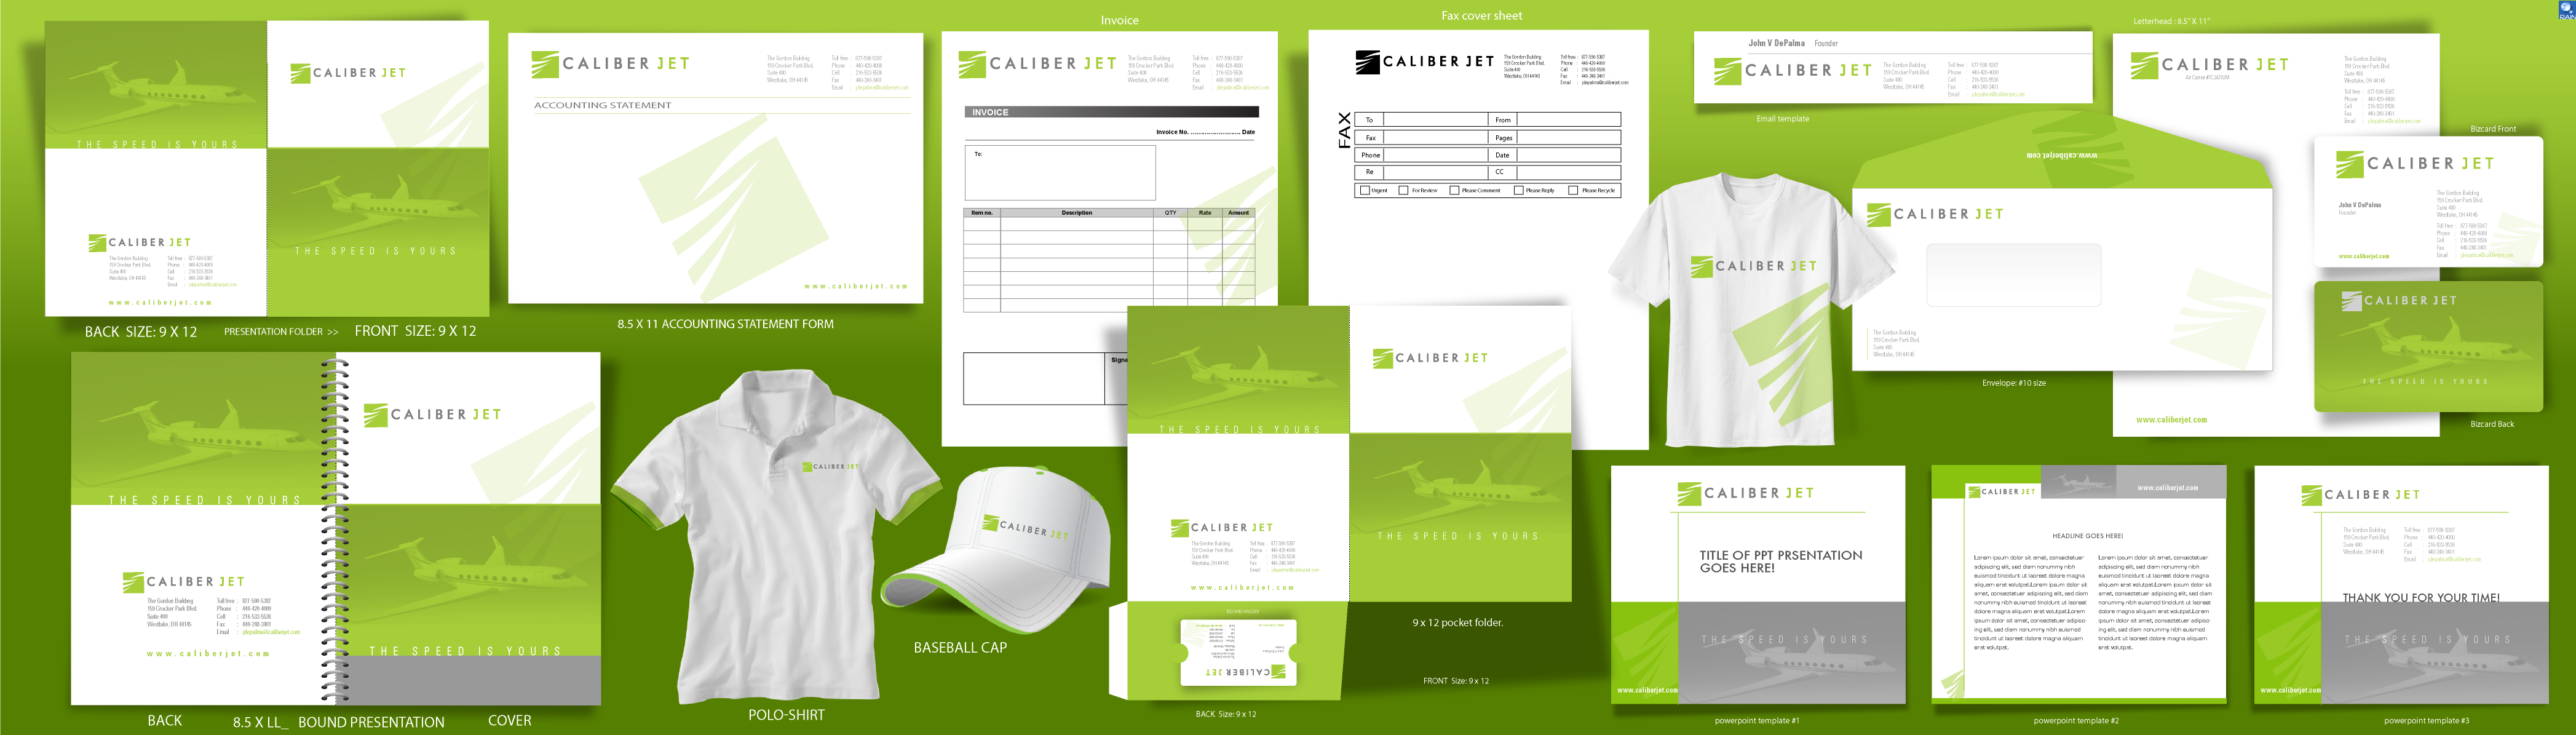 bizcards, stationary, envelopes,  powerpoint template, invoice template, polo shirts, email template - Aviation